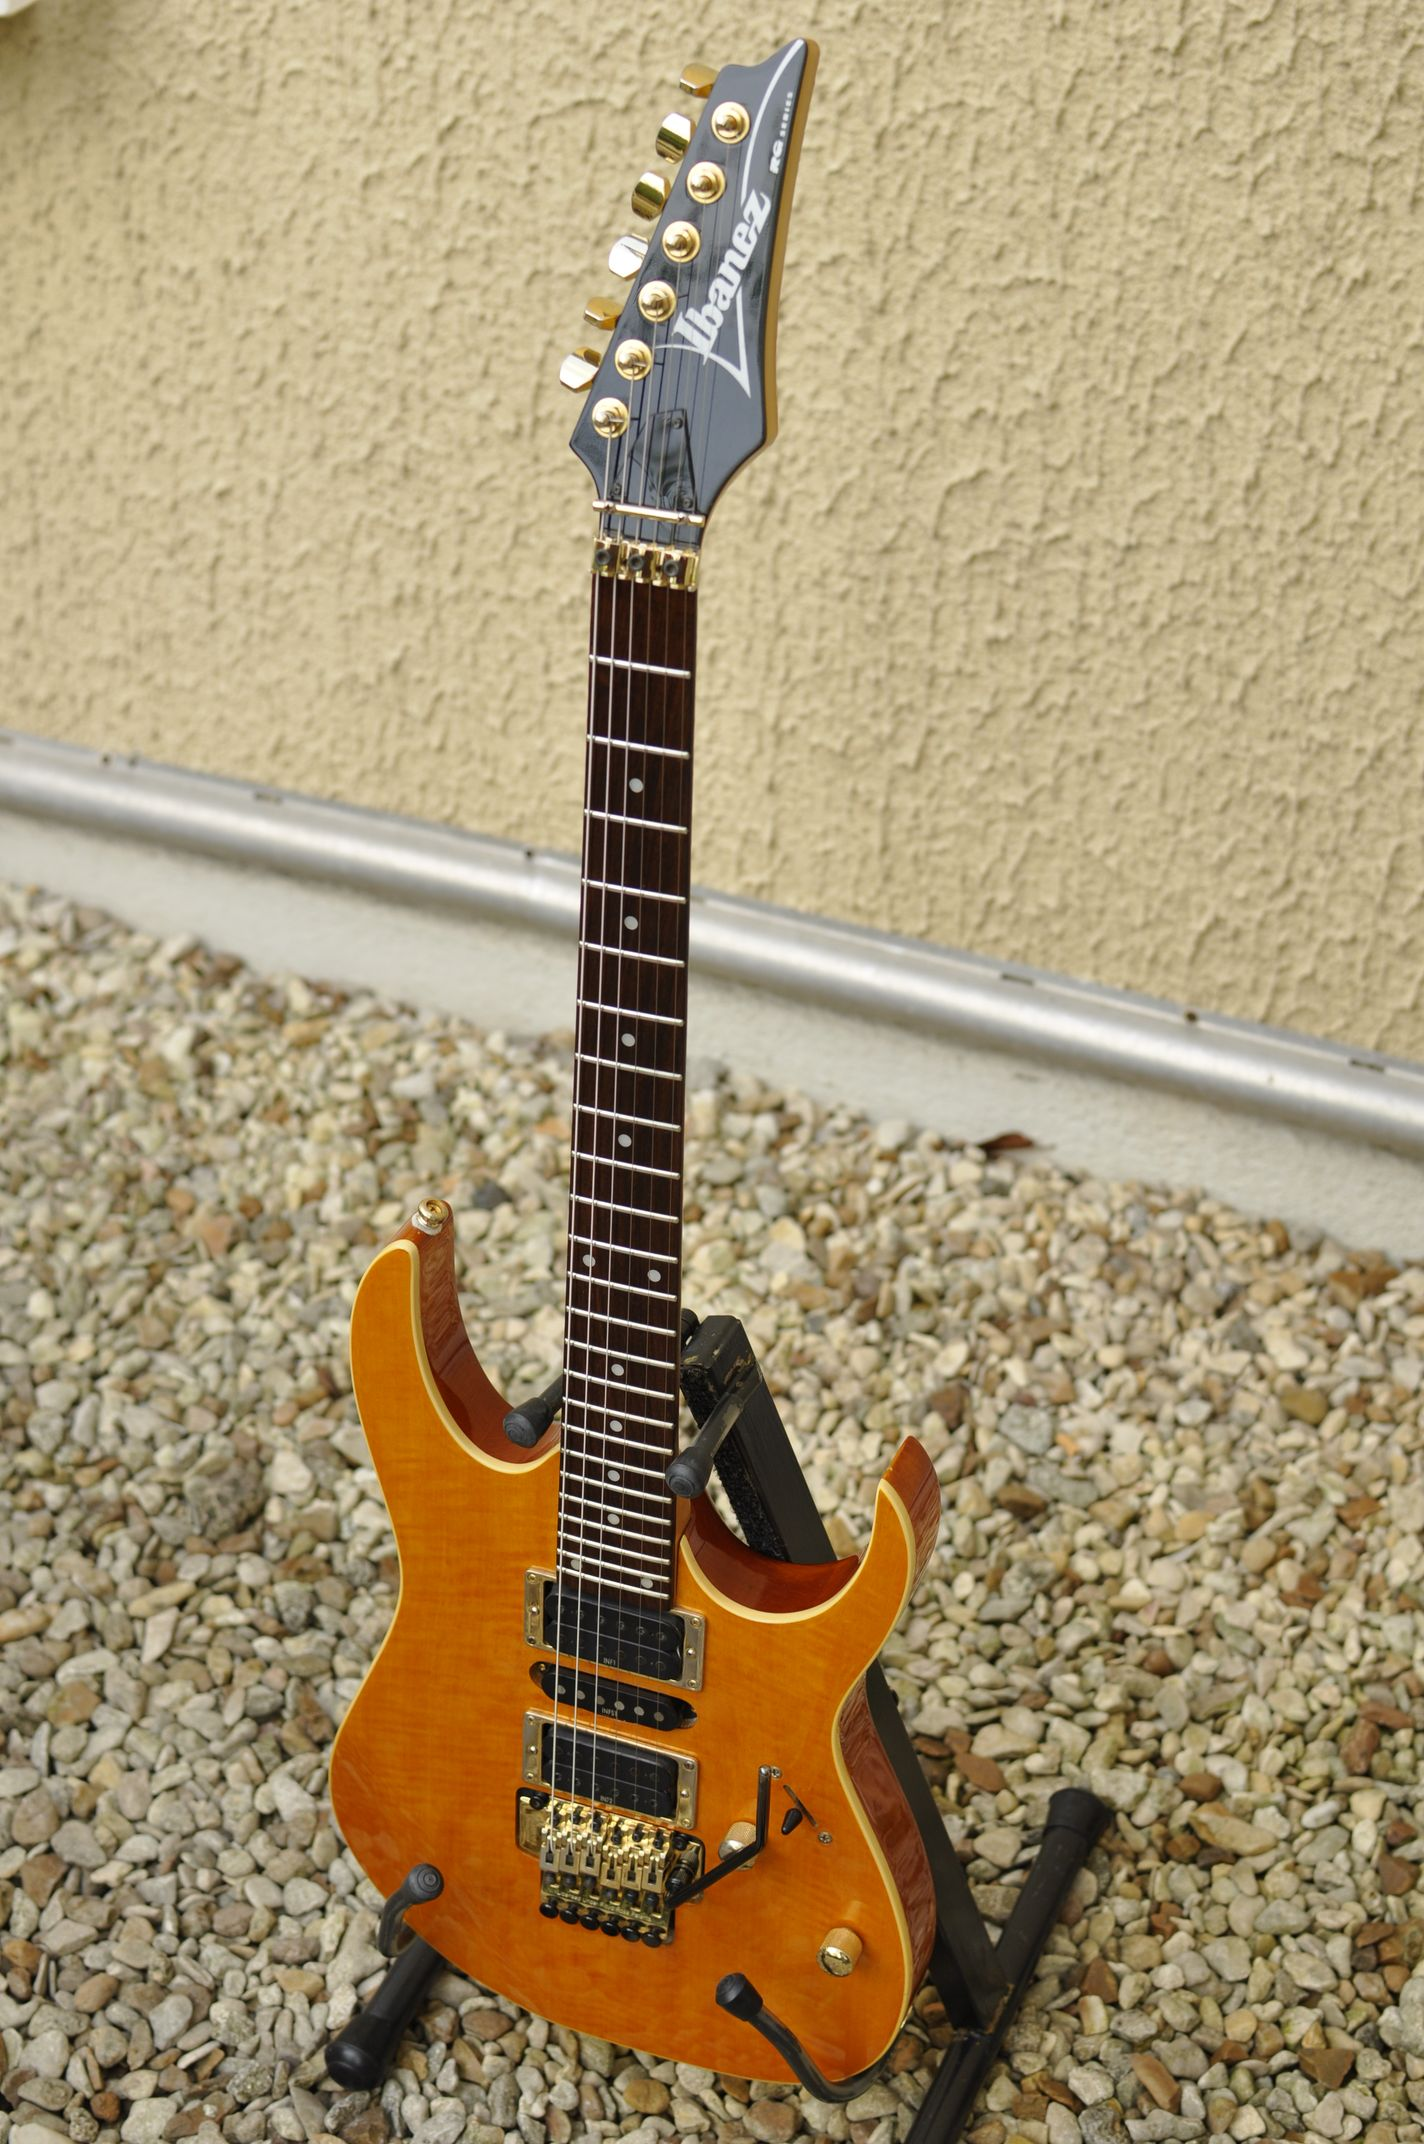 ibanez rg dating Finish based on the previously released j-custom rg-metal1 dating an axe from the heel plate is my personal jem/uv collection, ibanez guitar.